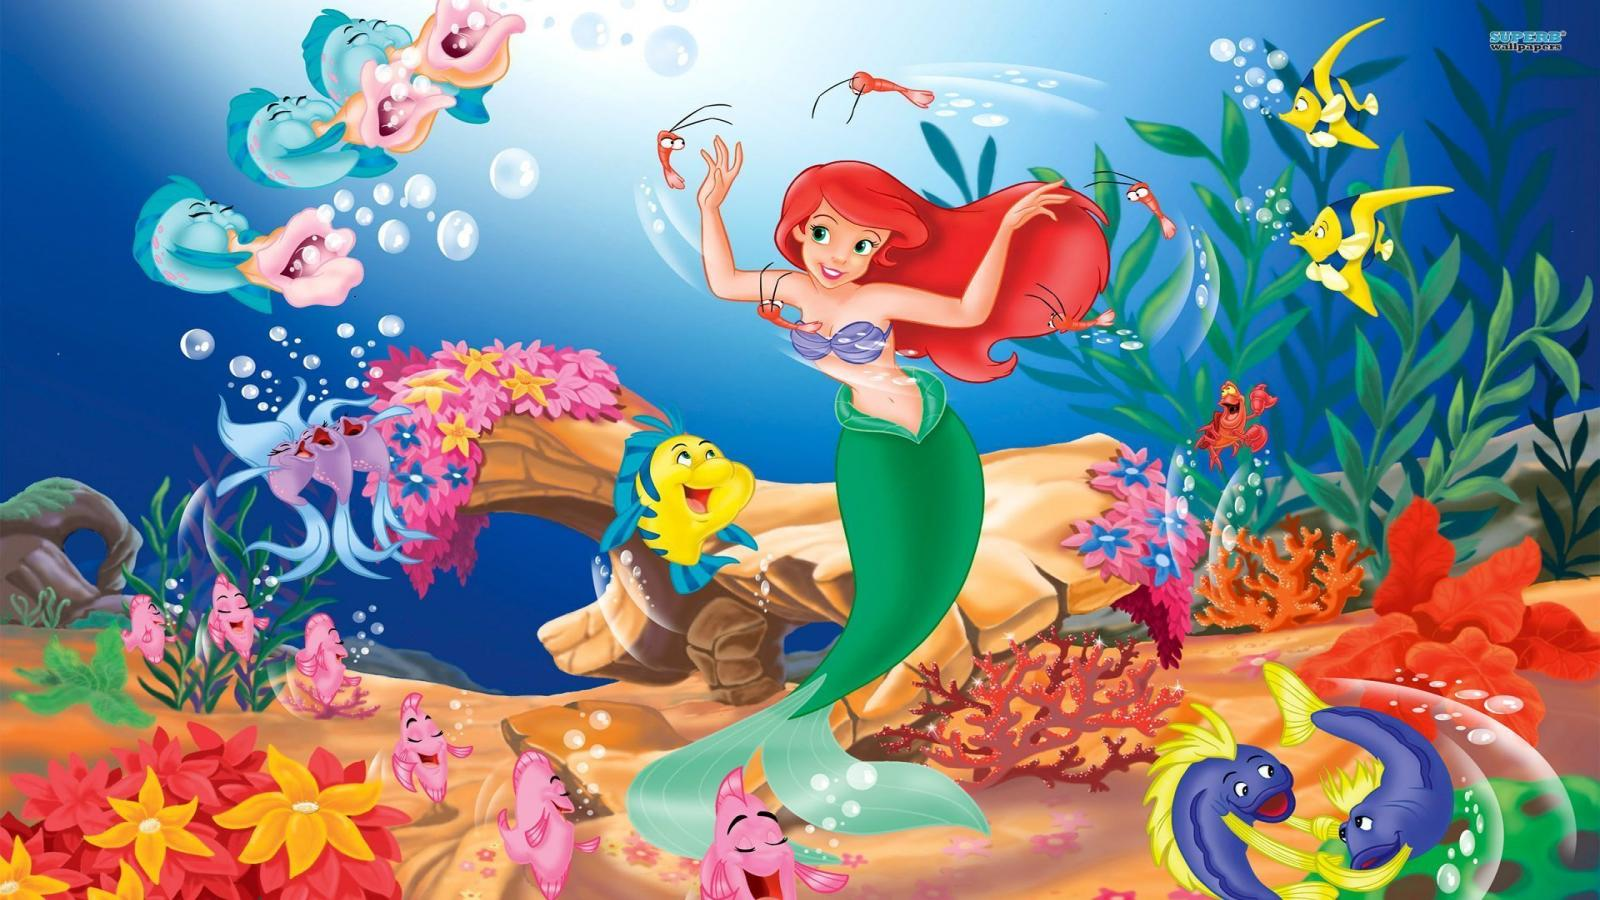 25 Under The Sea Facts About The Little Mermaid